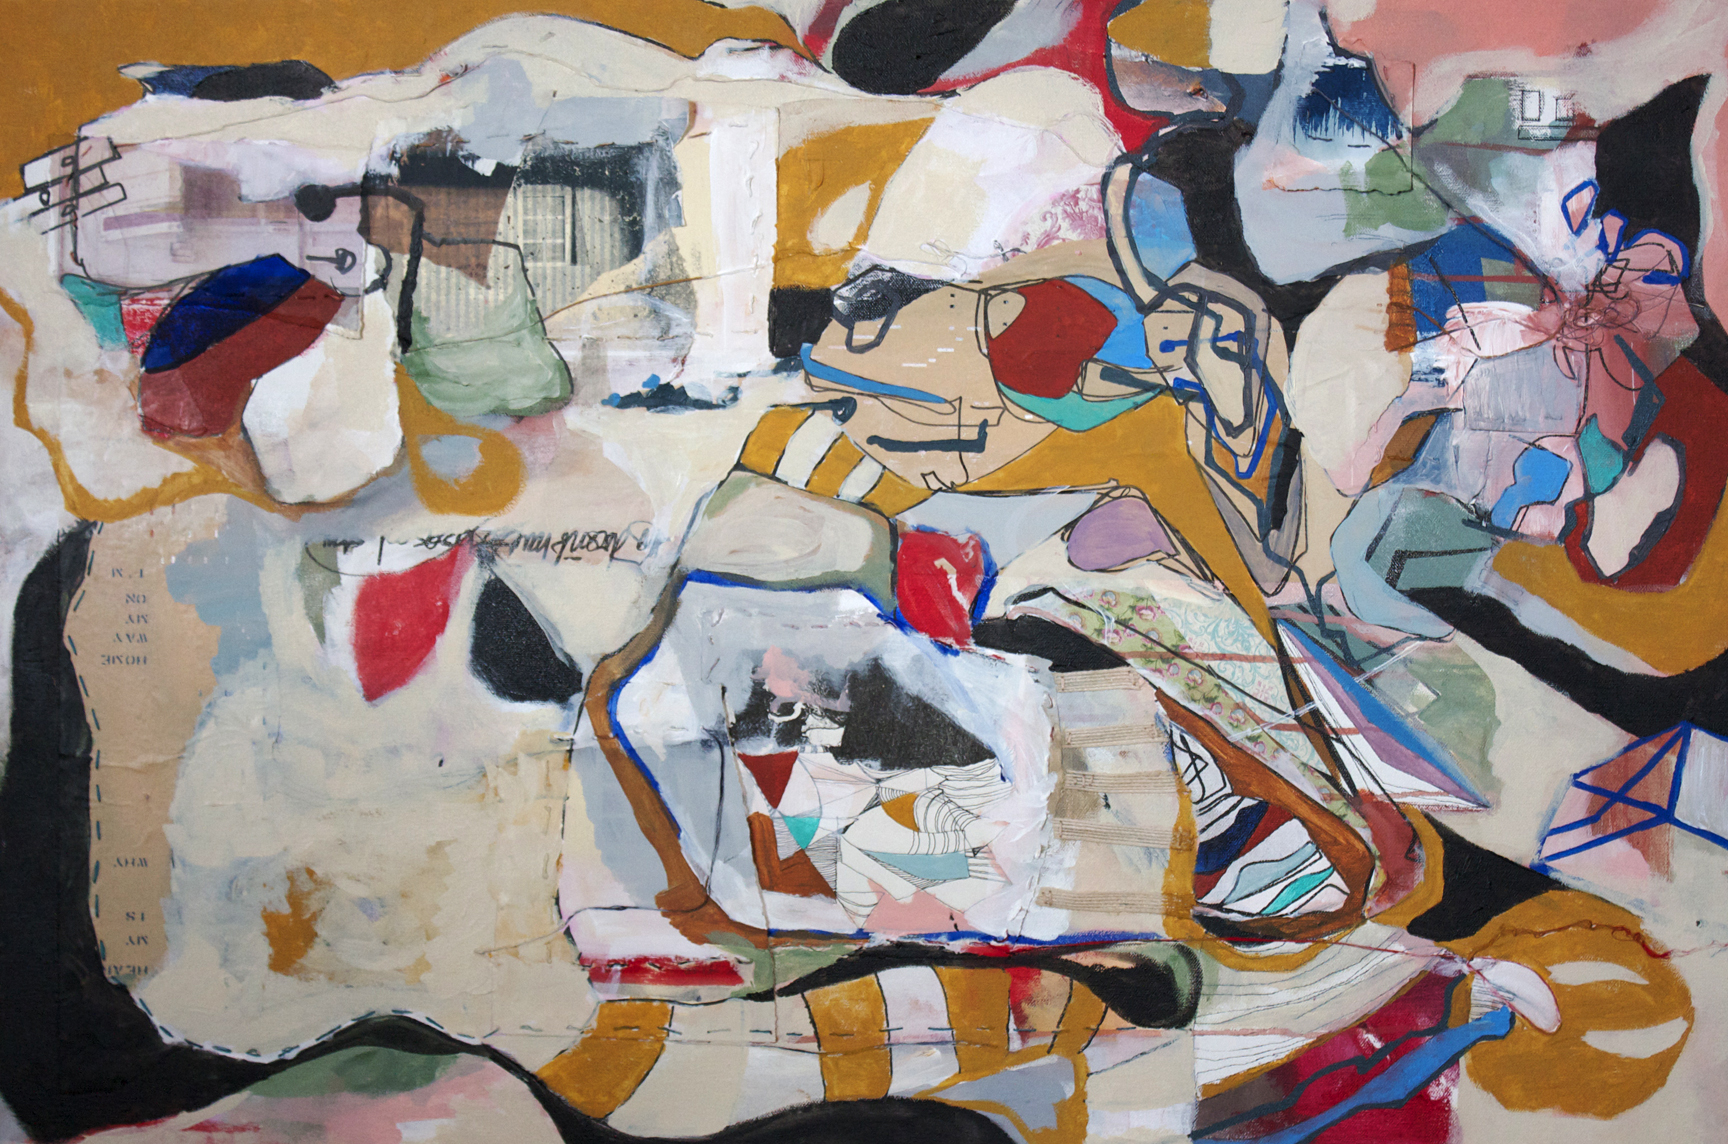 """The places I want to know do not have to be sad stories, mixed media on canvas, 24"""" H x 36"""" W, 2013"""